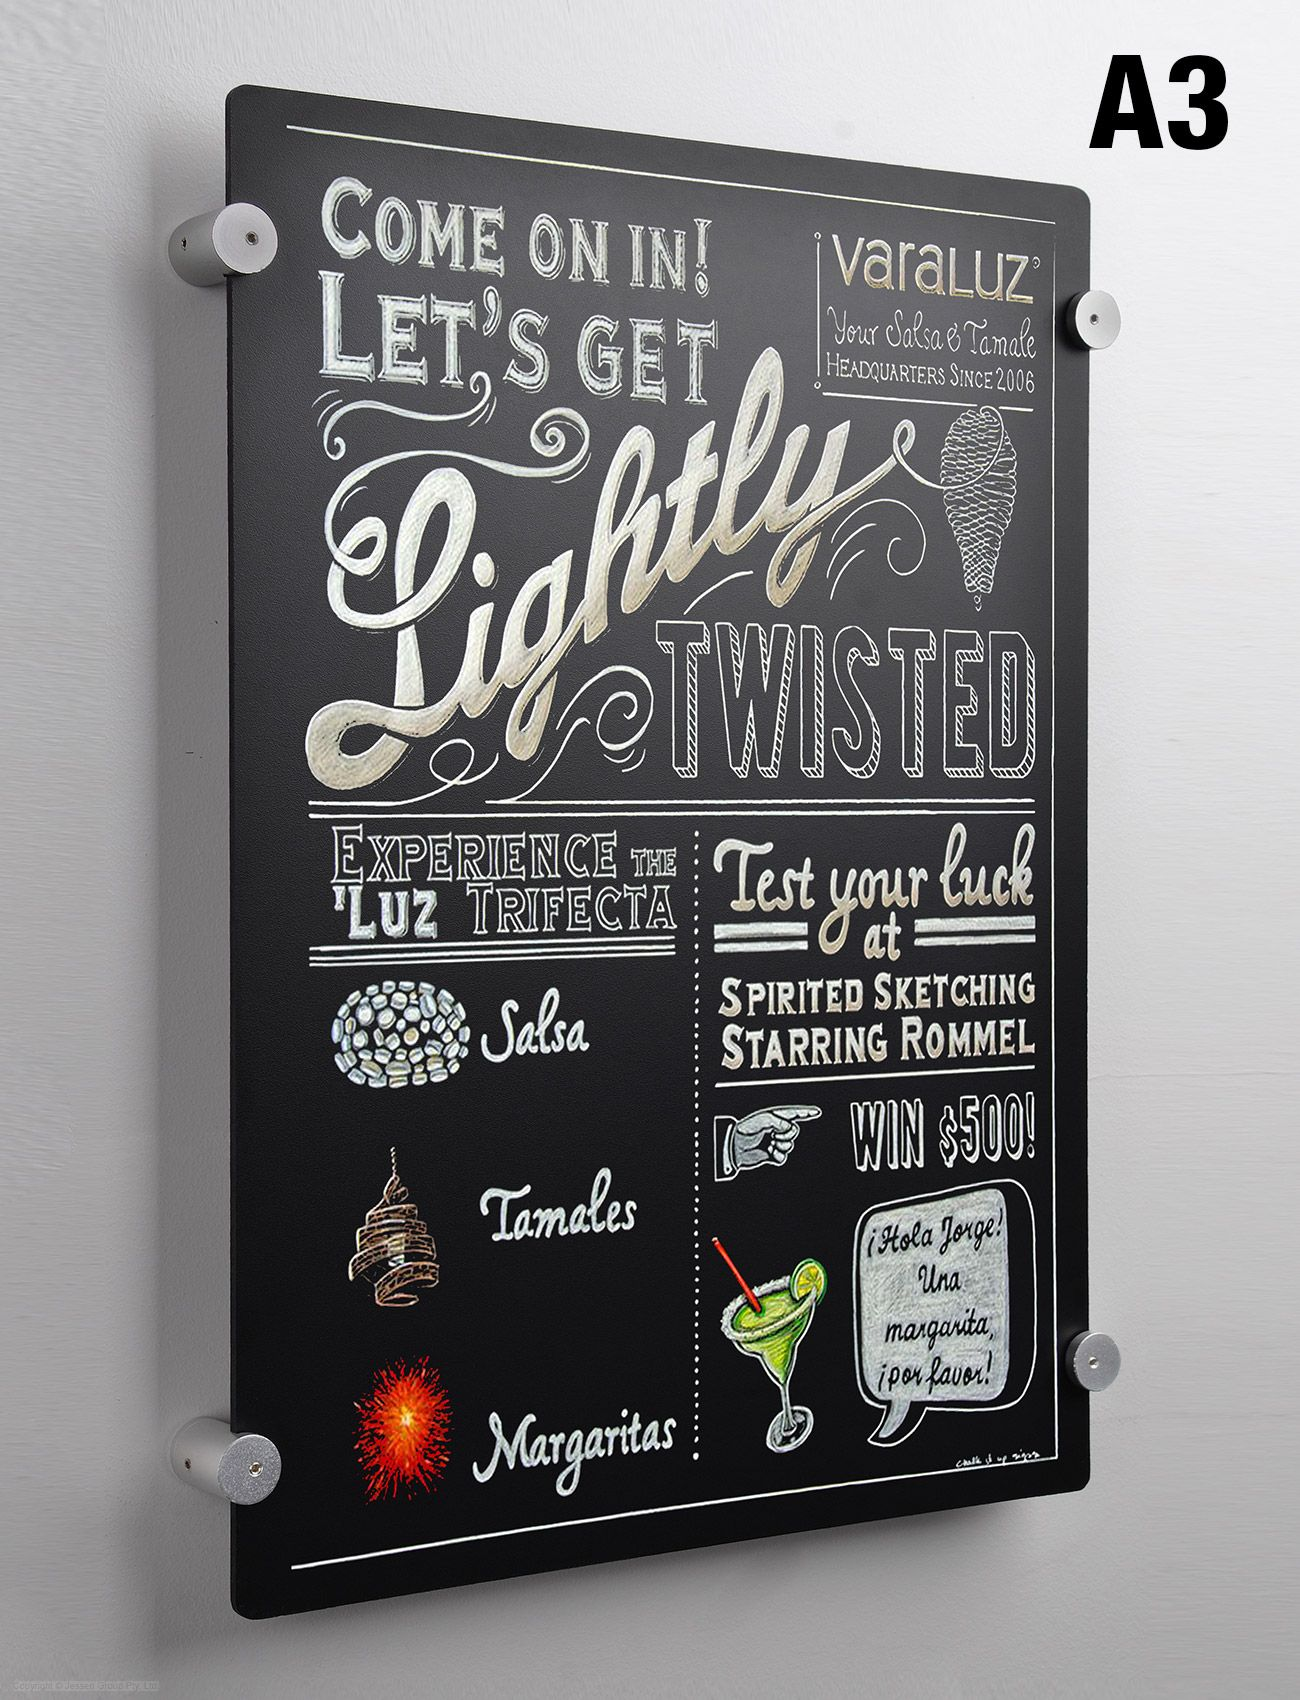 Wall Menu Board Is A3 For Large Writable Space Attach Blackboard To Wall In Portrait Or Landscape Orientation Co Menu Board Coffee Chalkboard Chalkboard Menu